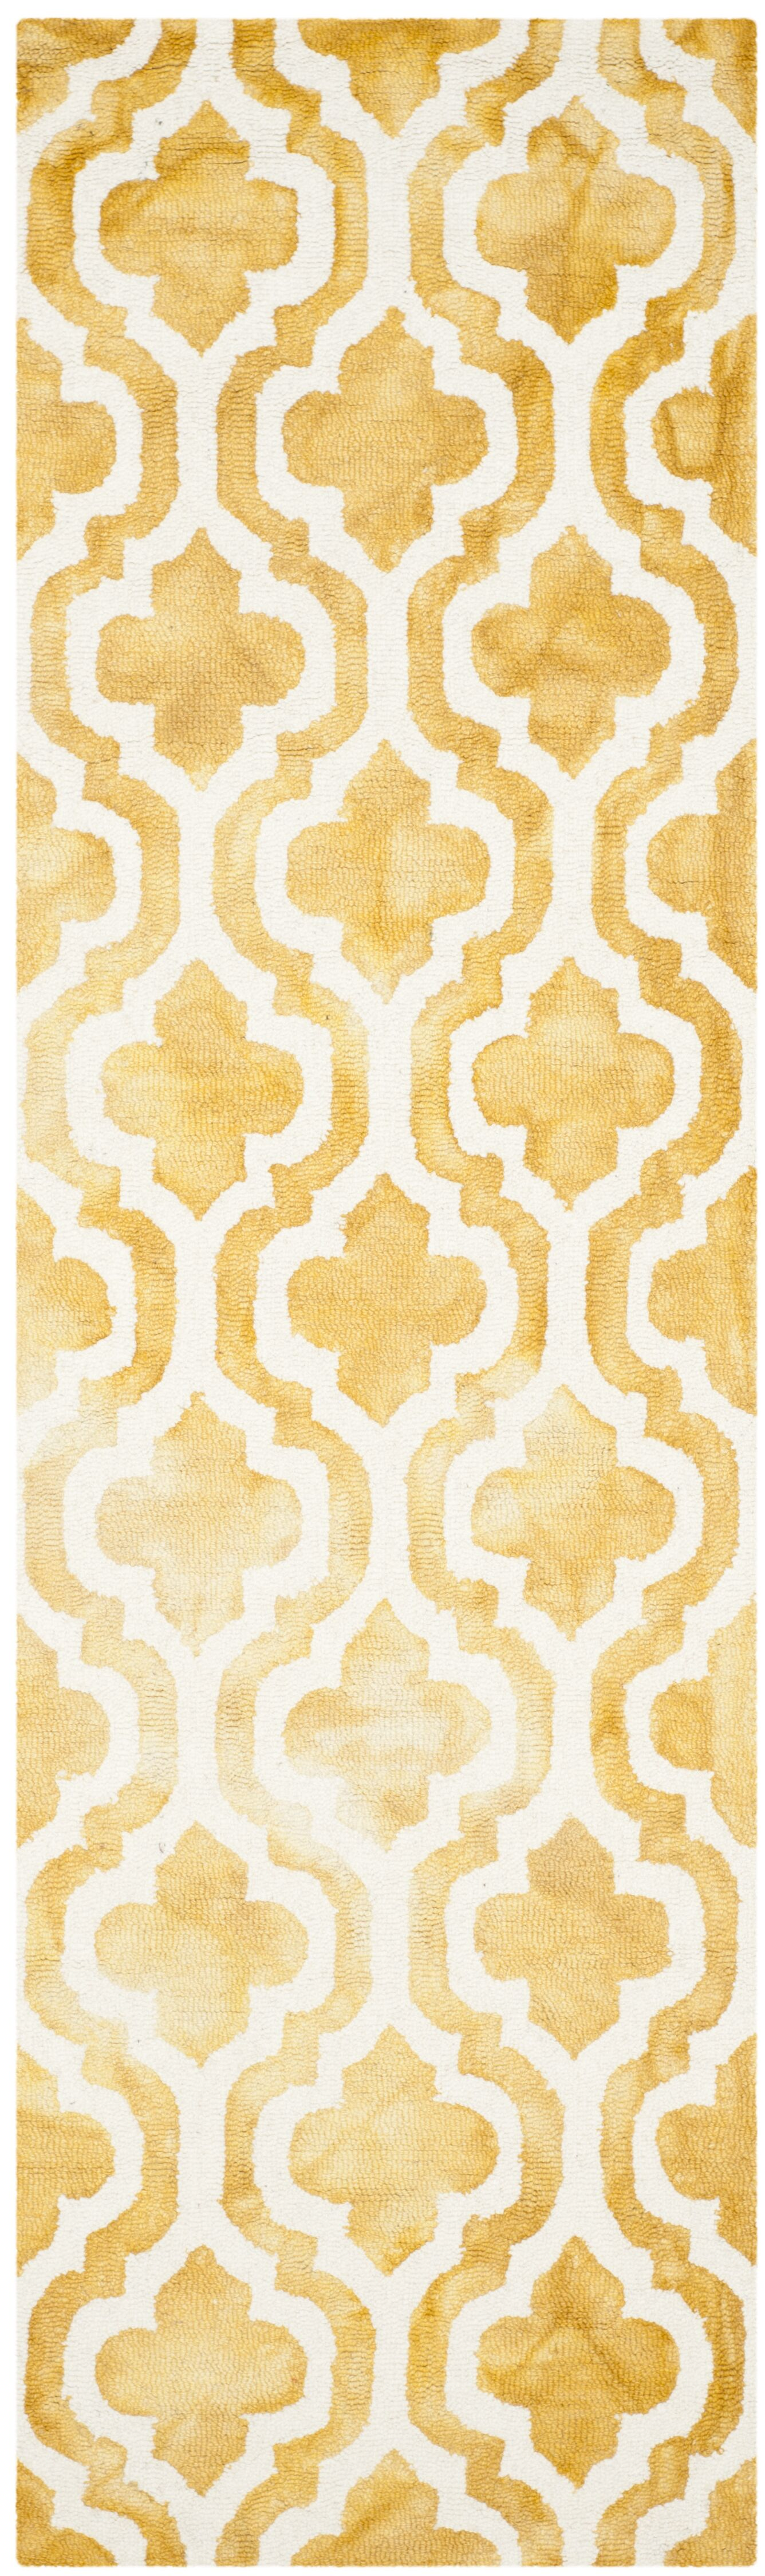 Merseles Hand-Tufted Gold/Ivory Area Rug Rug Size: Runner 2'3